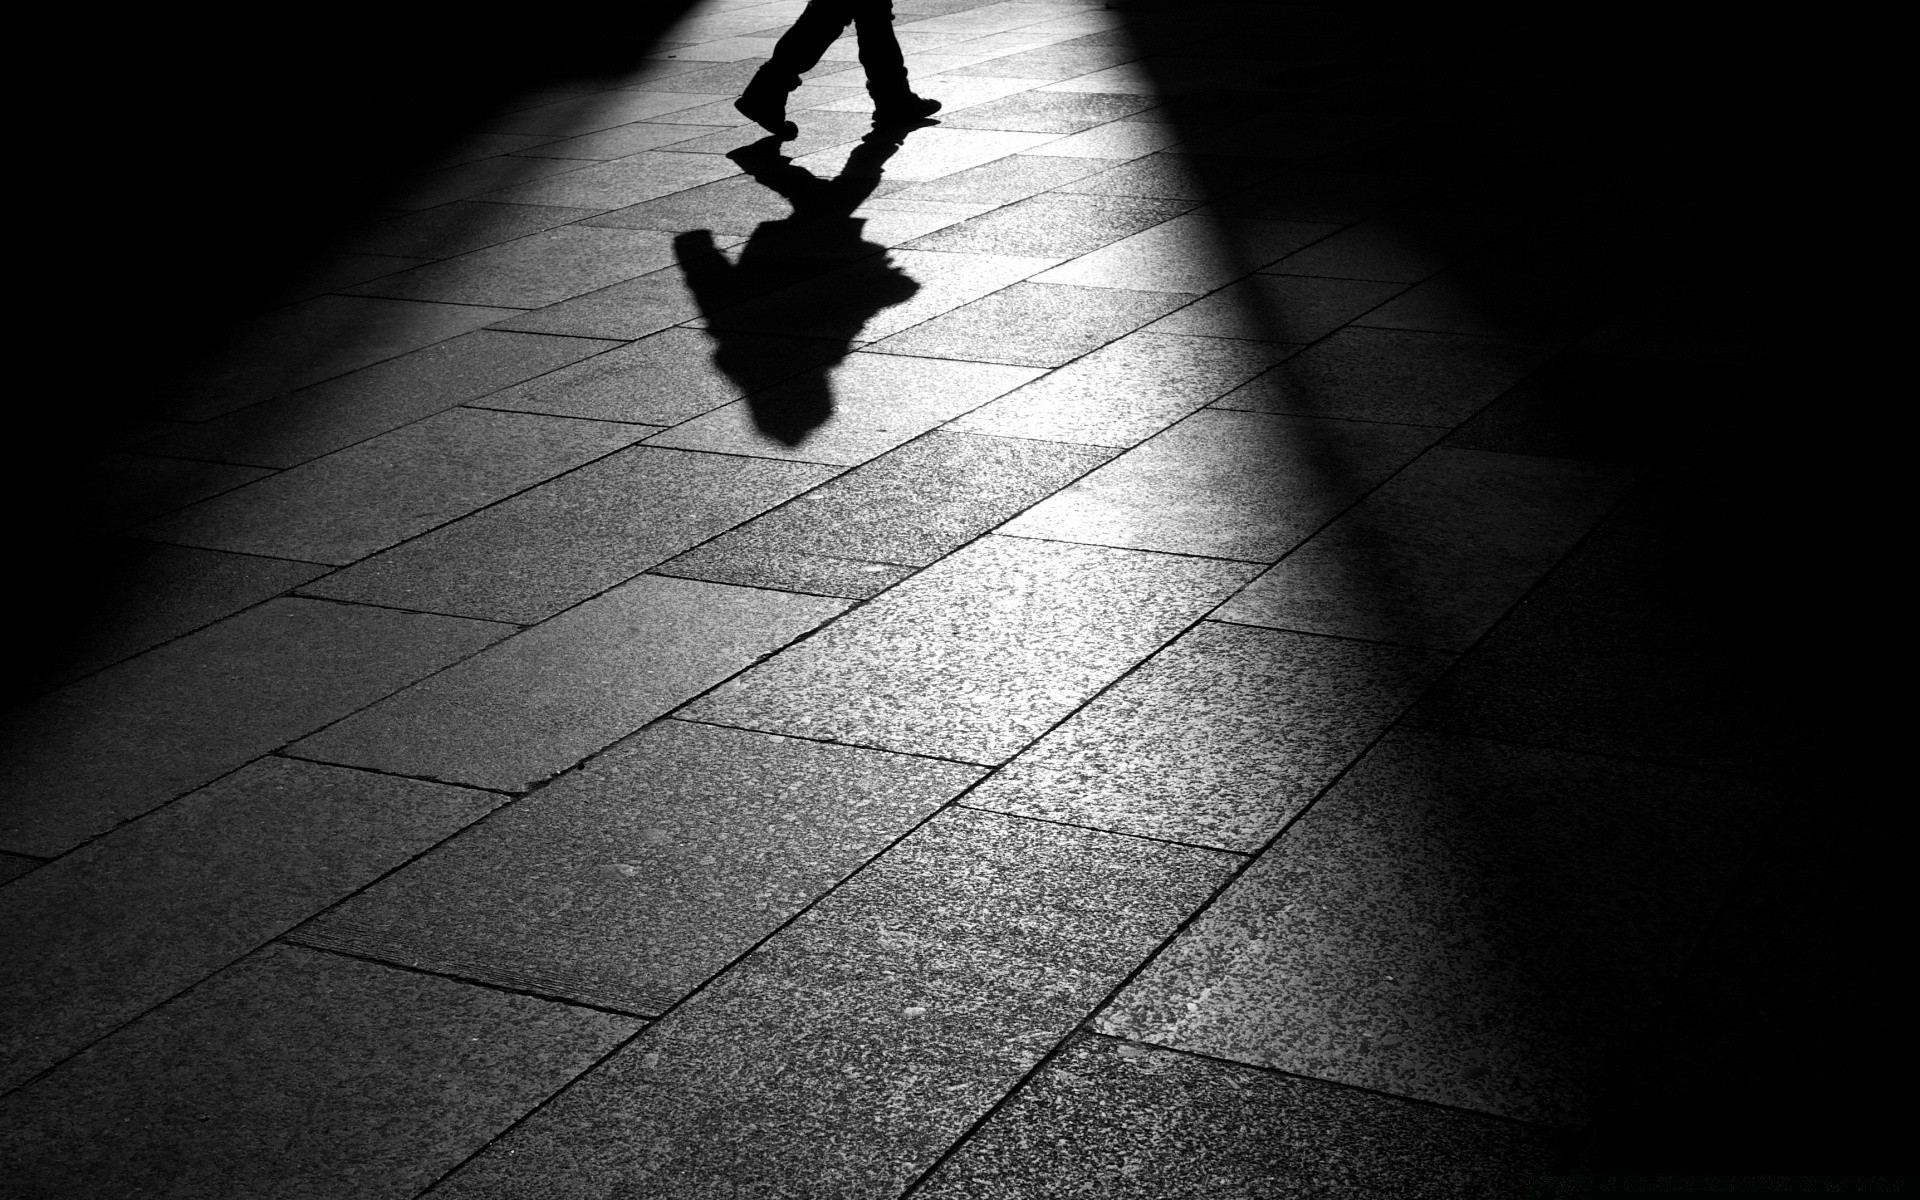 black and white monochrome street shadow pavement dark floor city man blur motion one adult square wall urban abstract